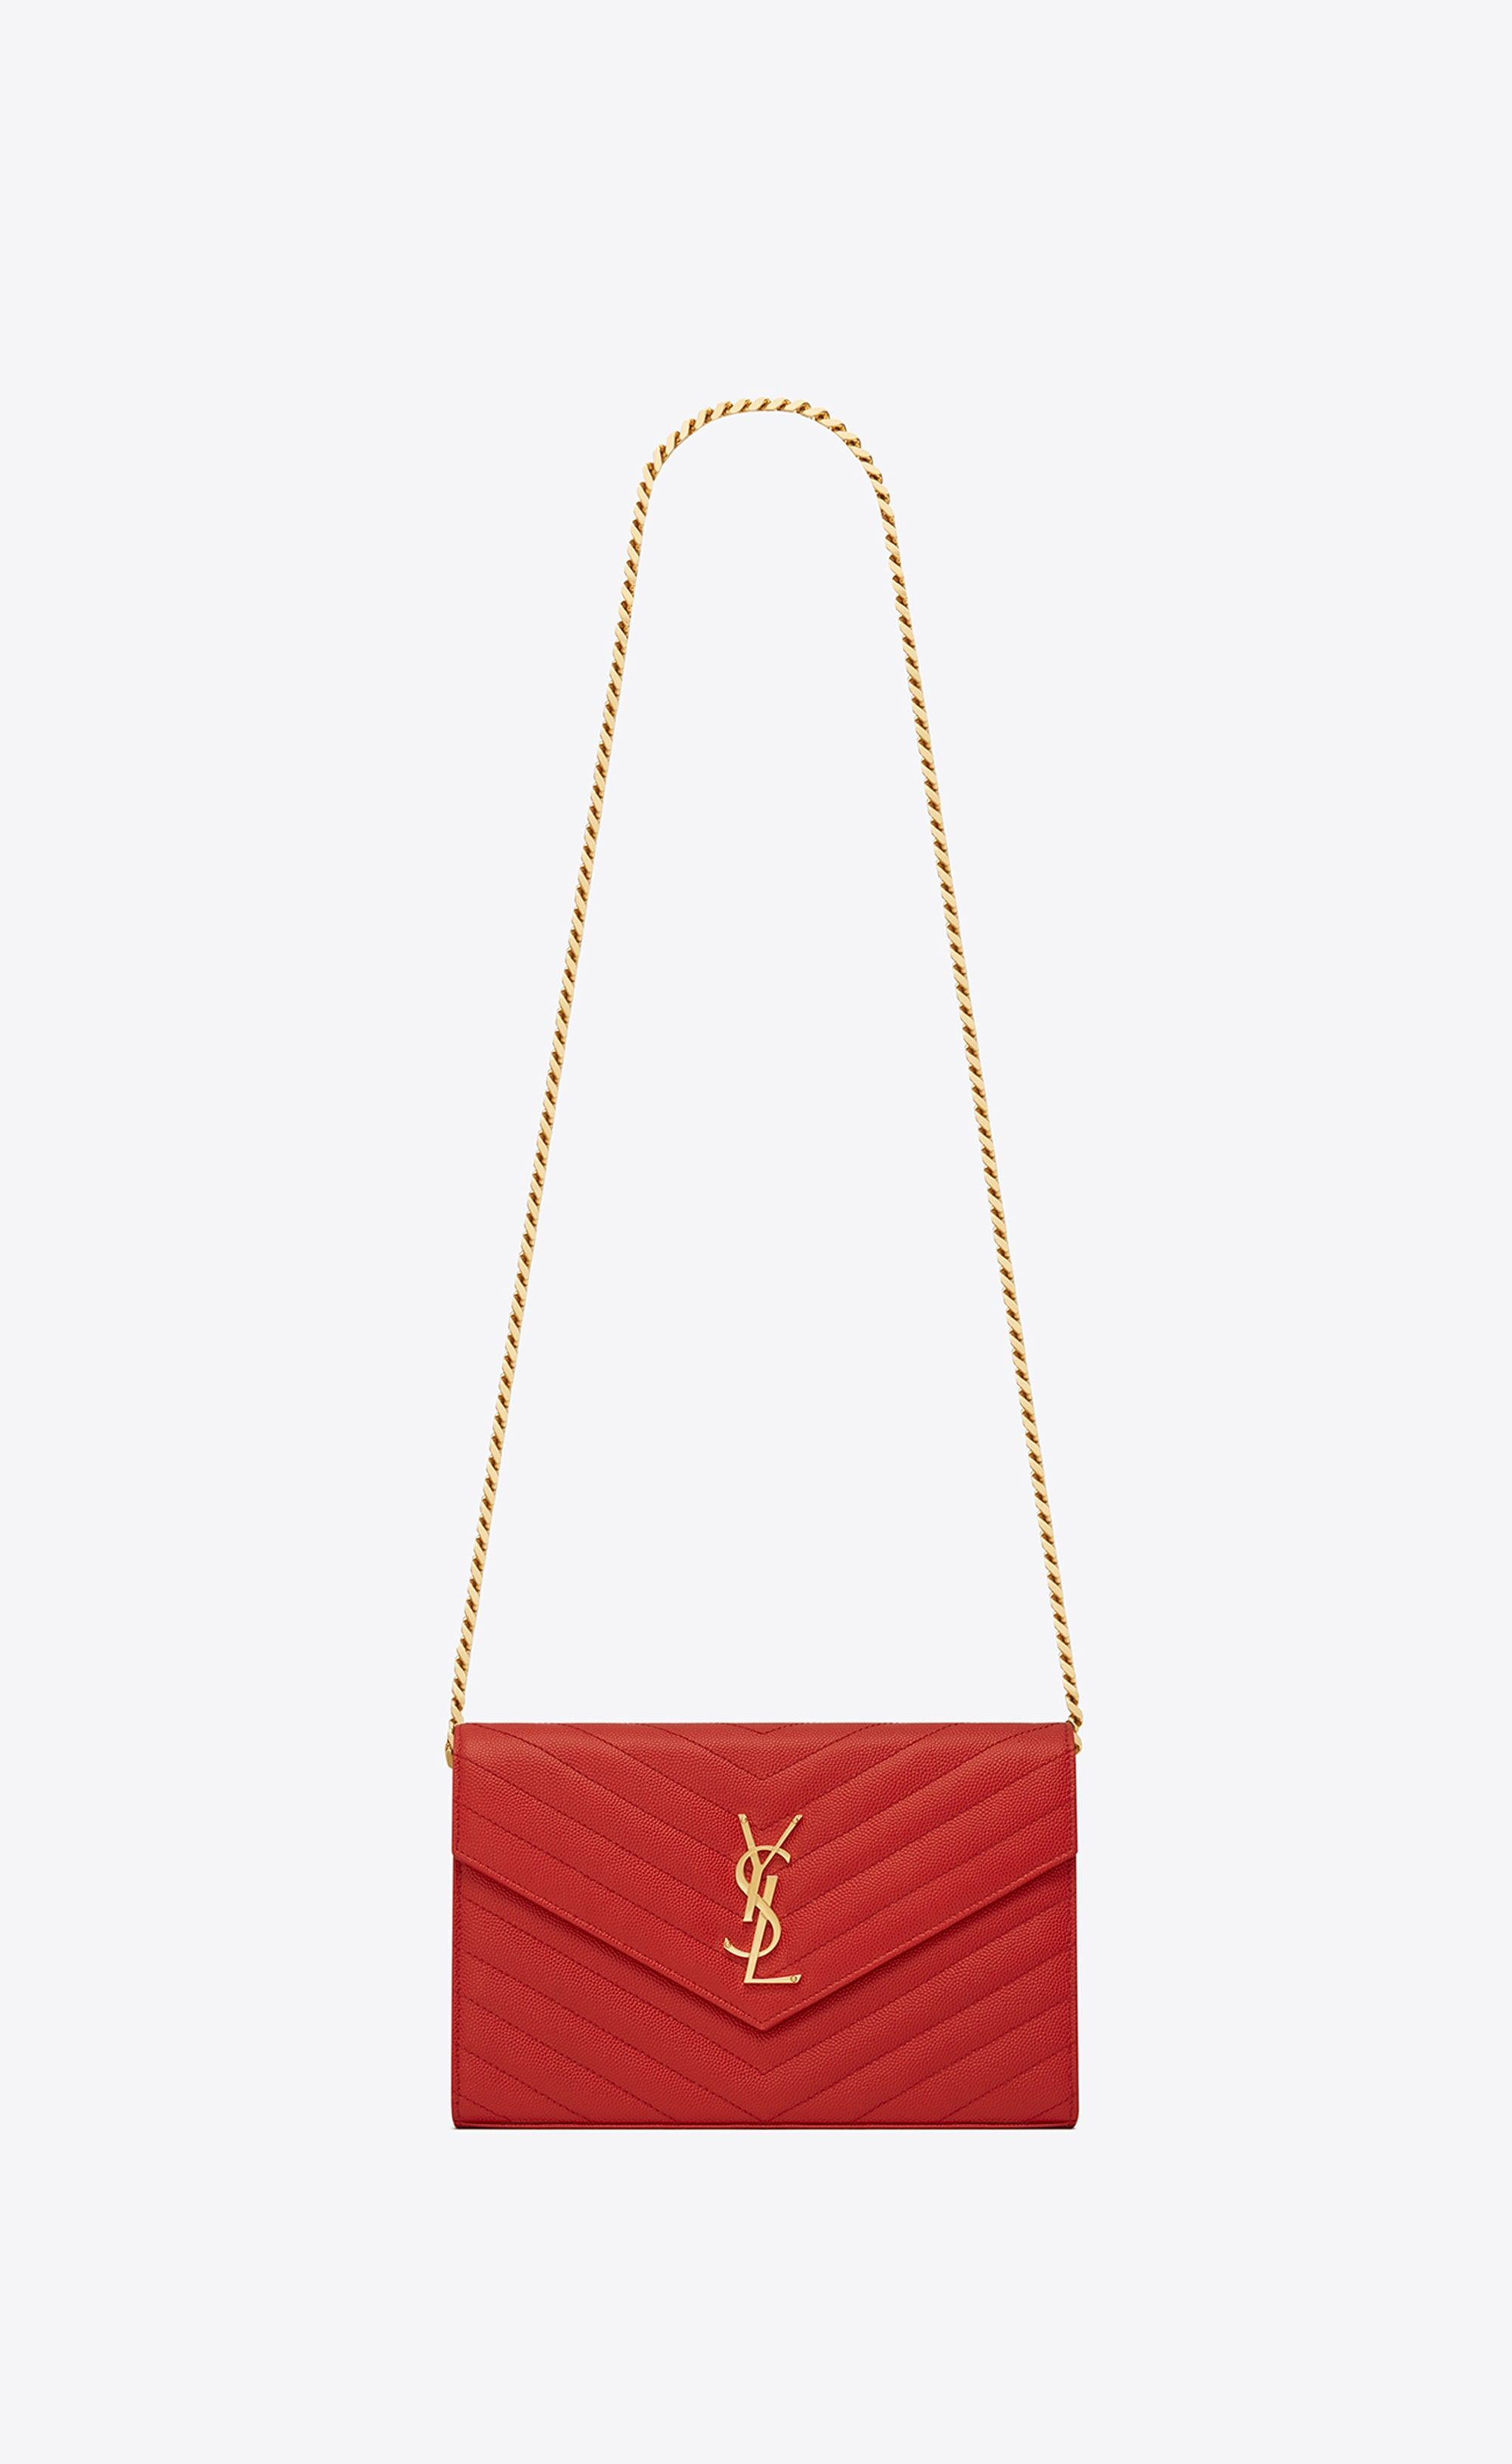 Saint Laurent Monogram Chain Wallet In Lipstick Red Textured Matelassé  Leather   YSL.com d0bdb68cac